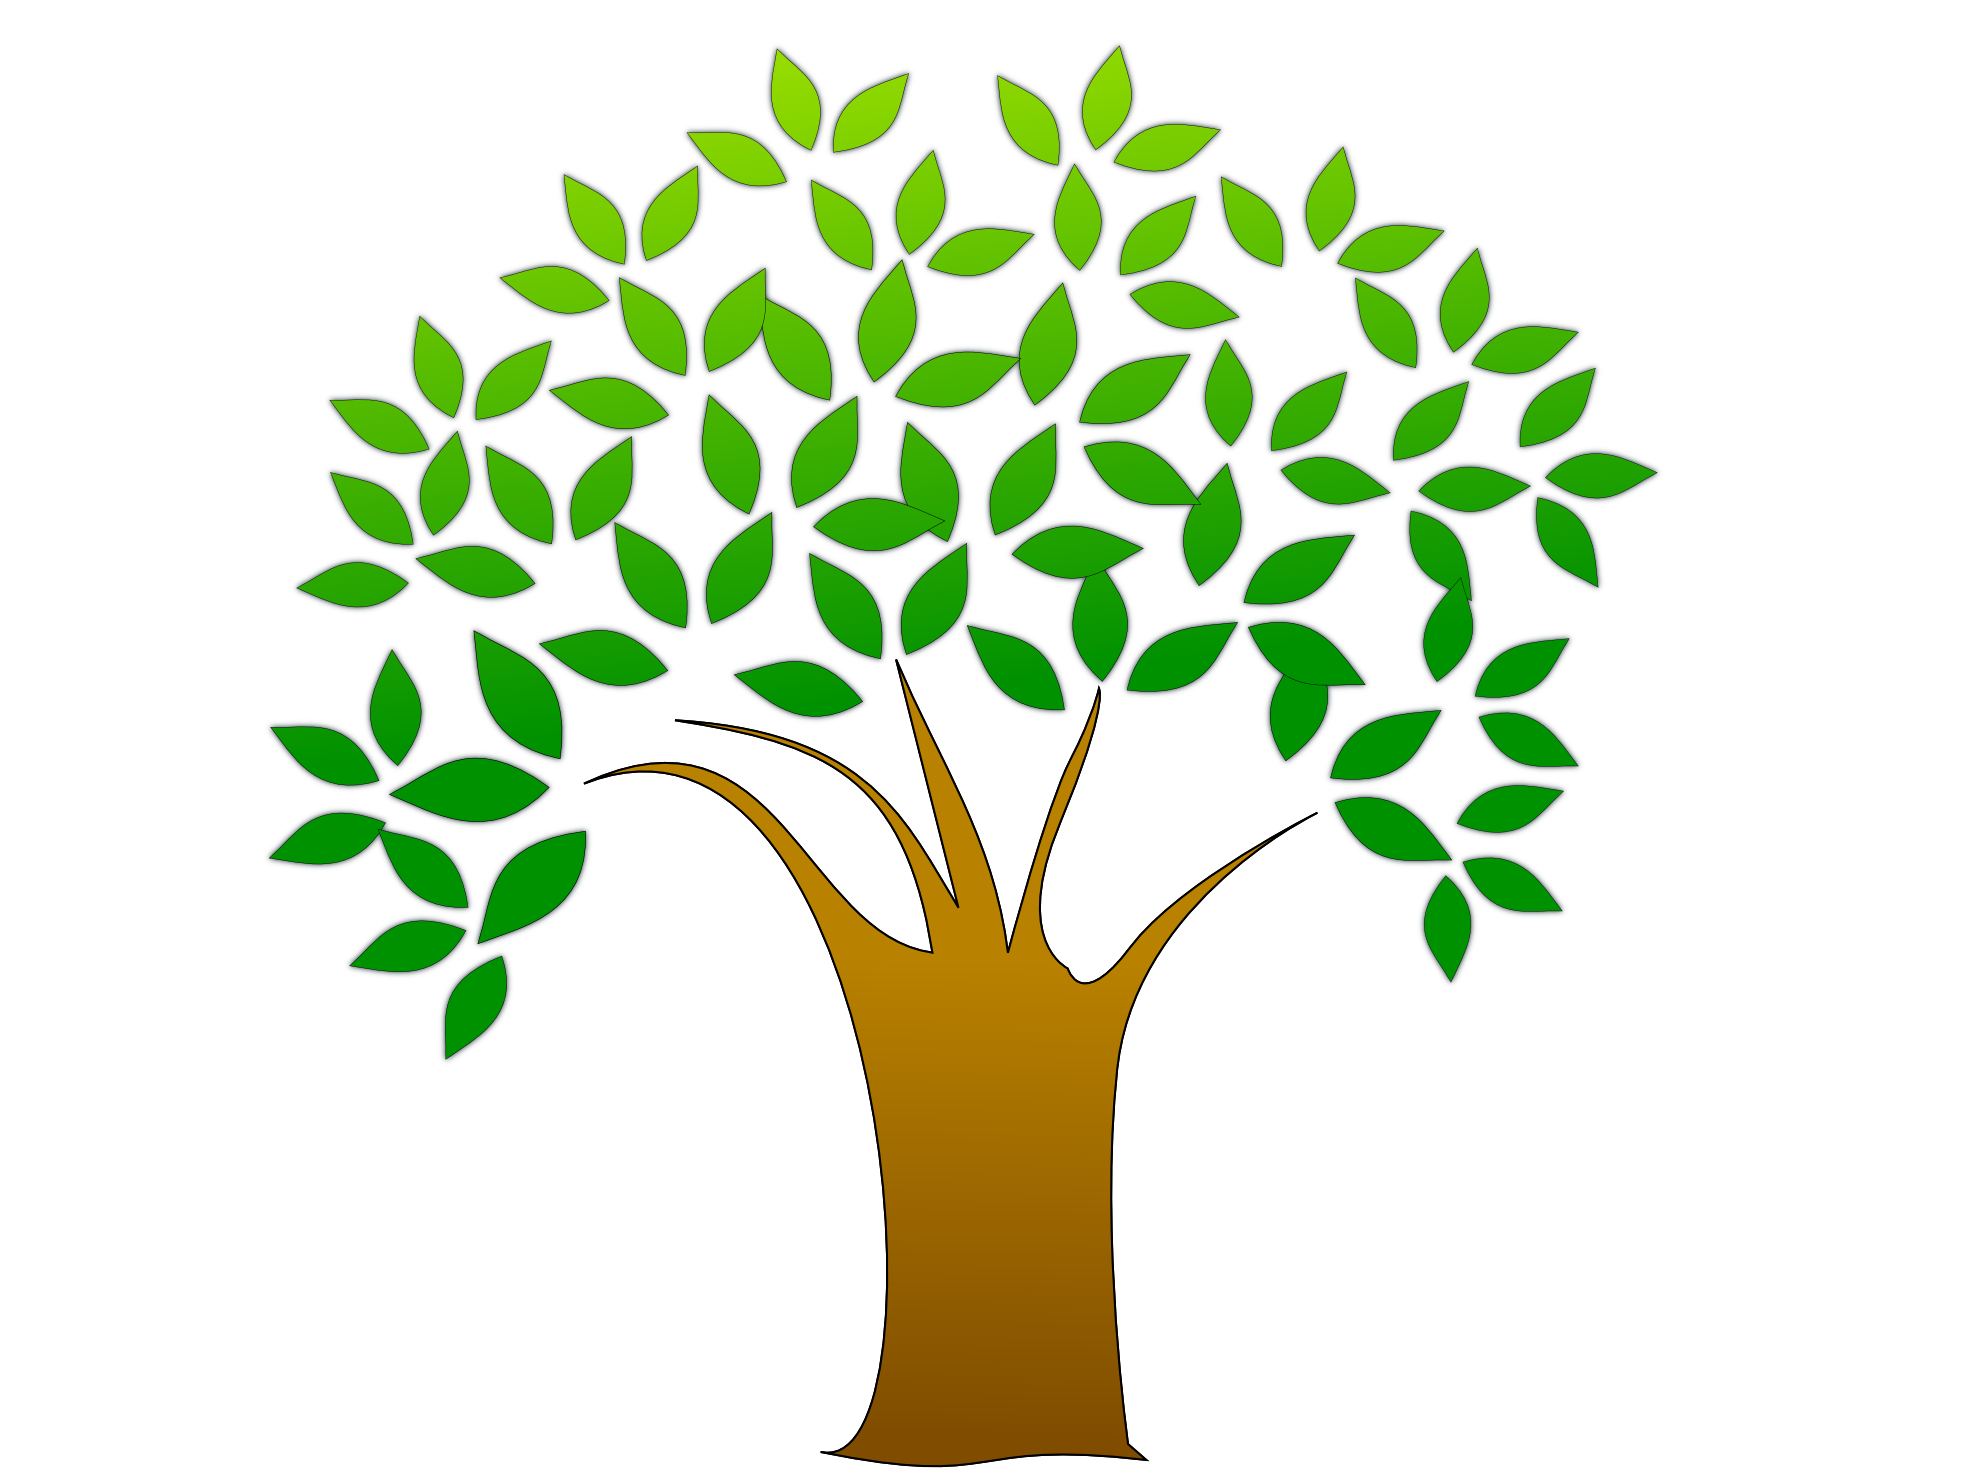 Trees clipart png. Tree transparent images pluspng